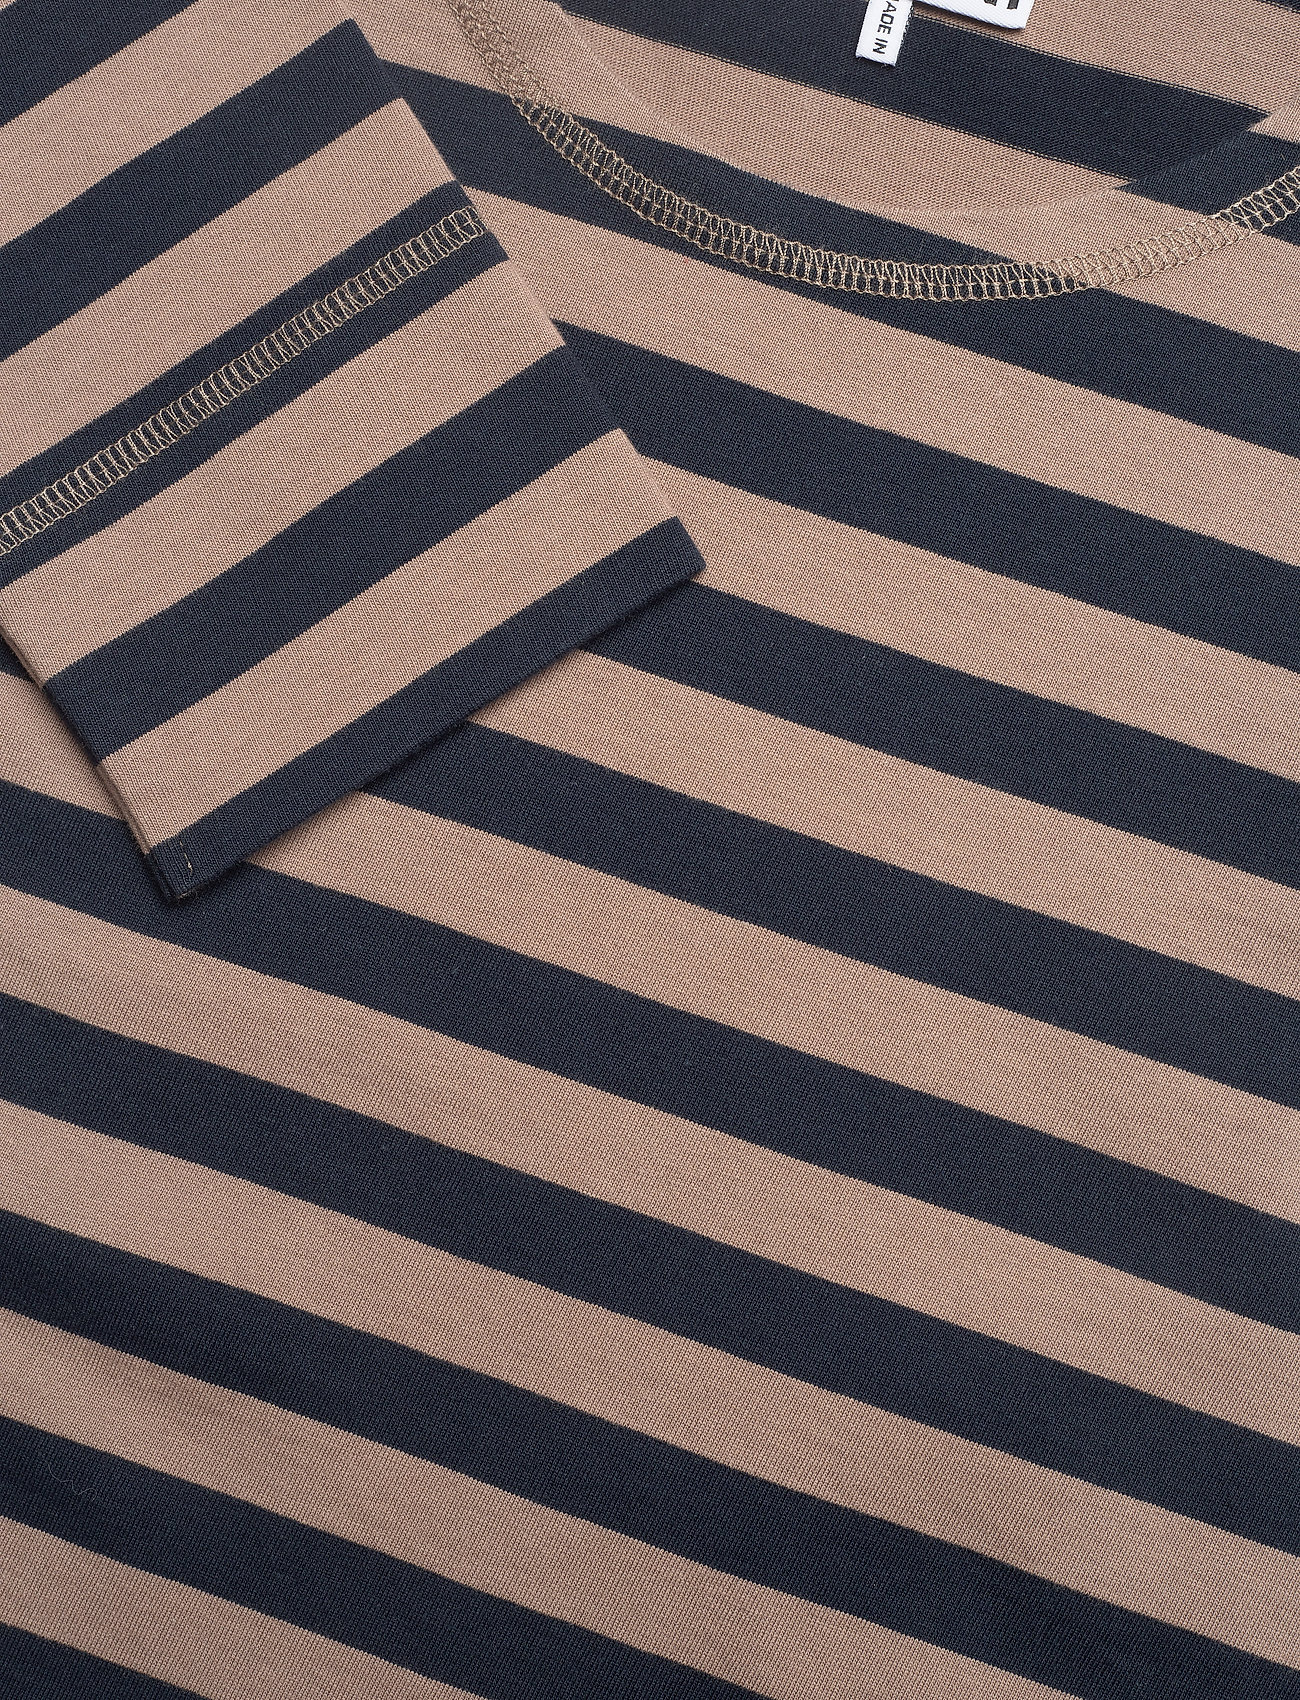 Ganni - Striped Cotton Jersey - langærmede toppe - sky captain - 2